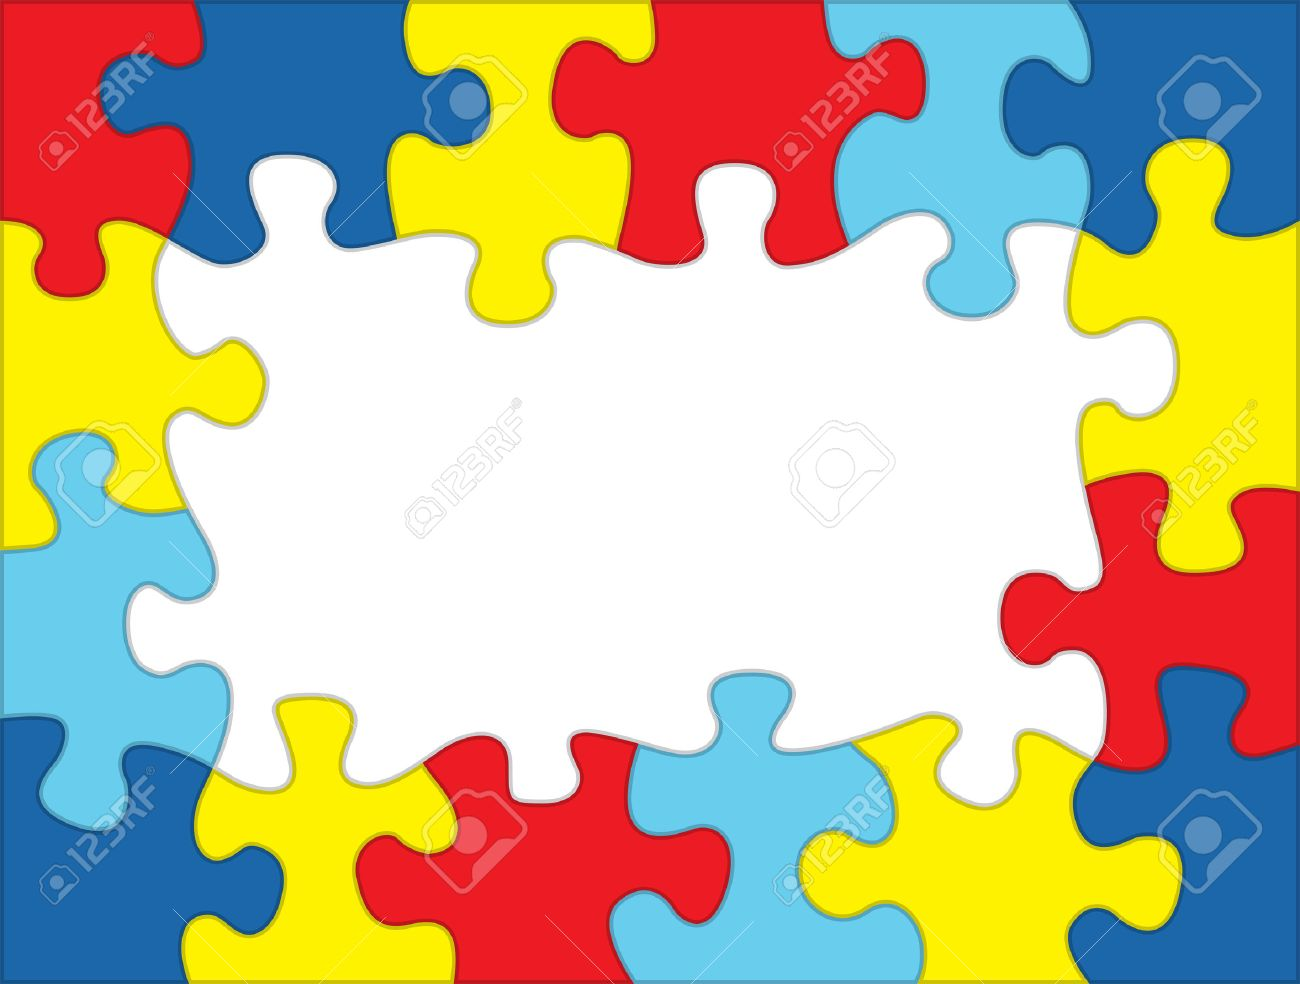 a frame made out of autism awareness colored puzzle pieces room